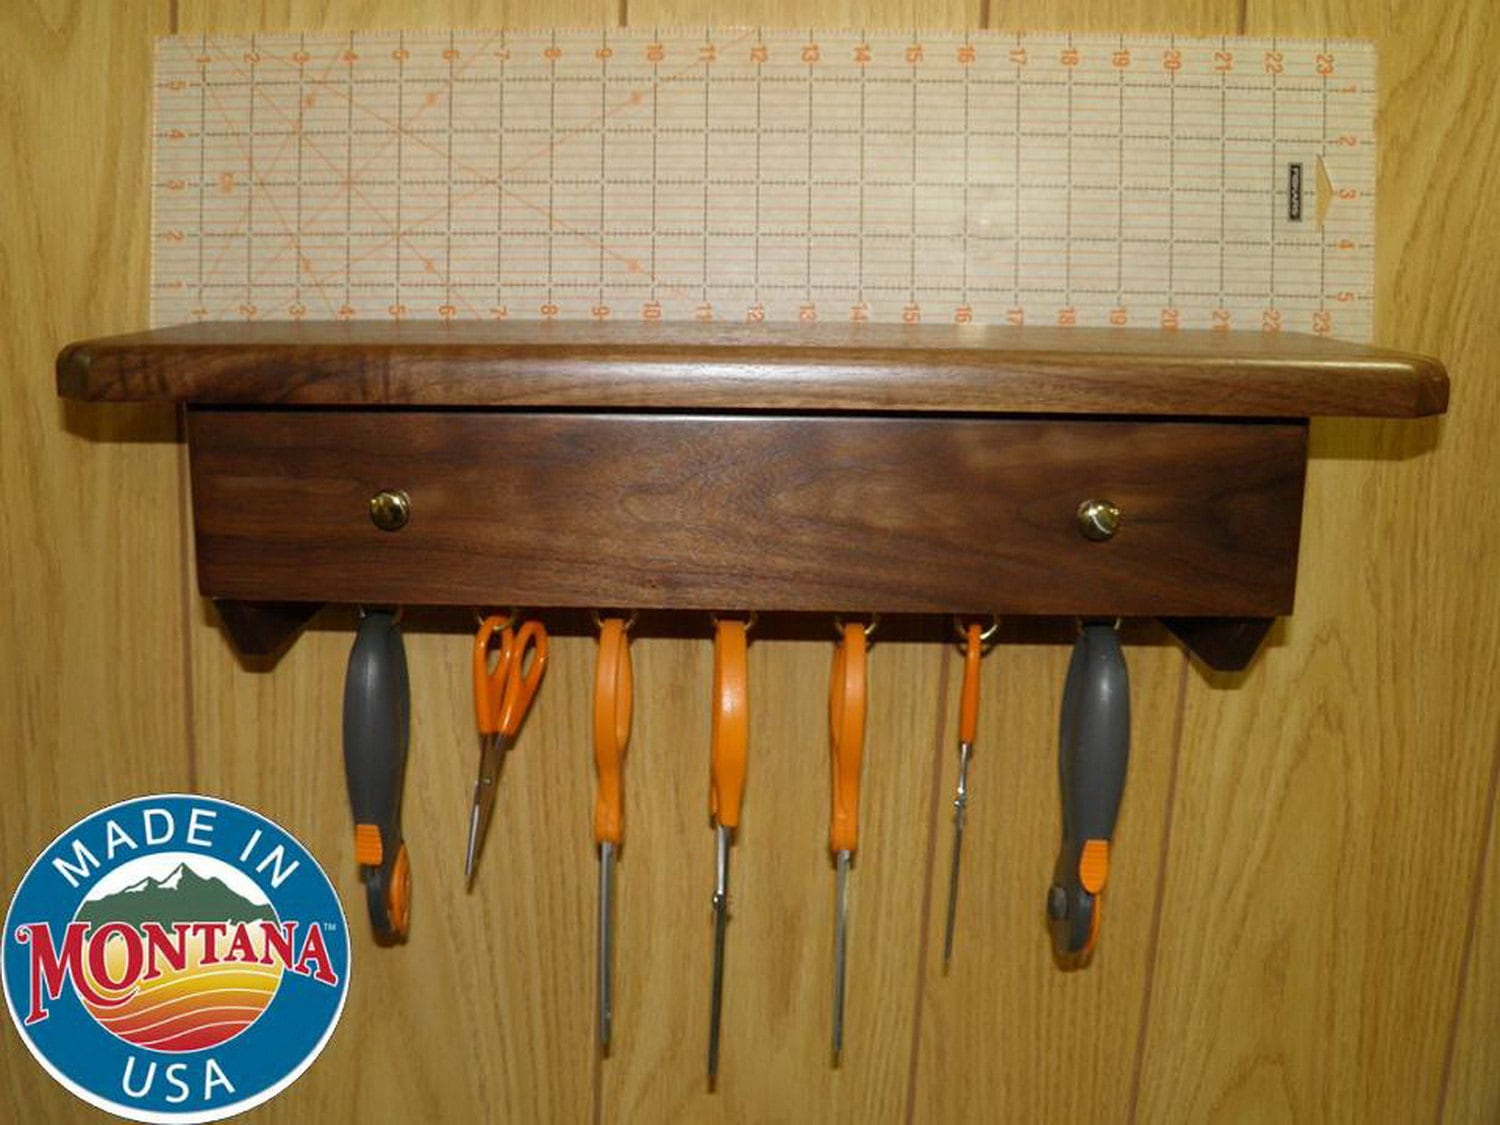 Quilting Ruler Holder Wall Mounted 14 Slots Solid Walnut